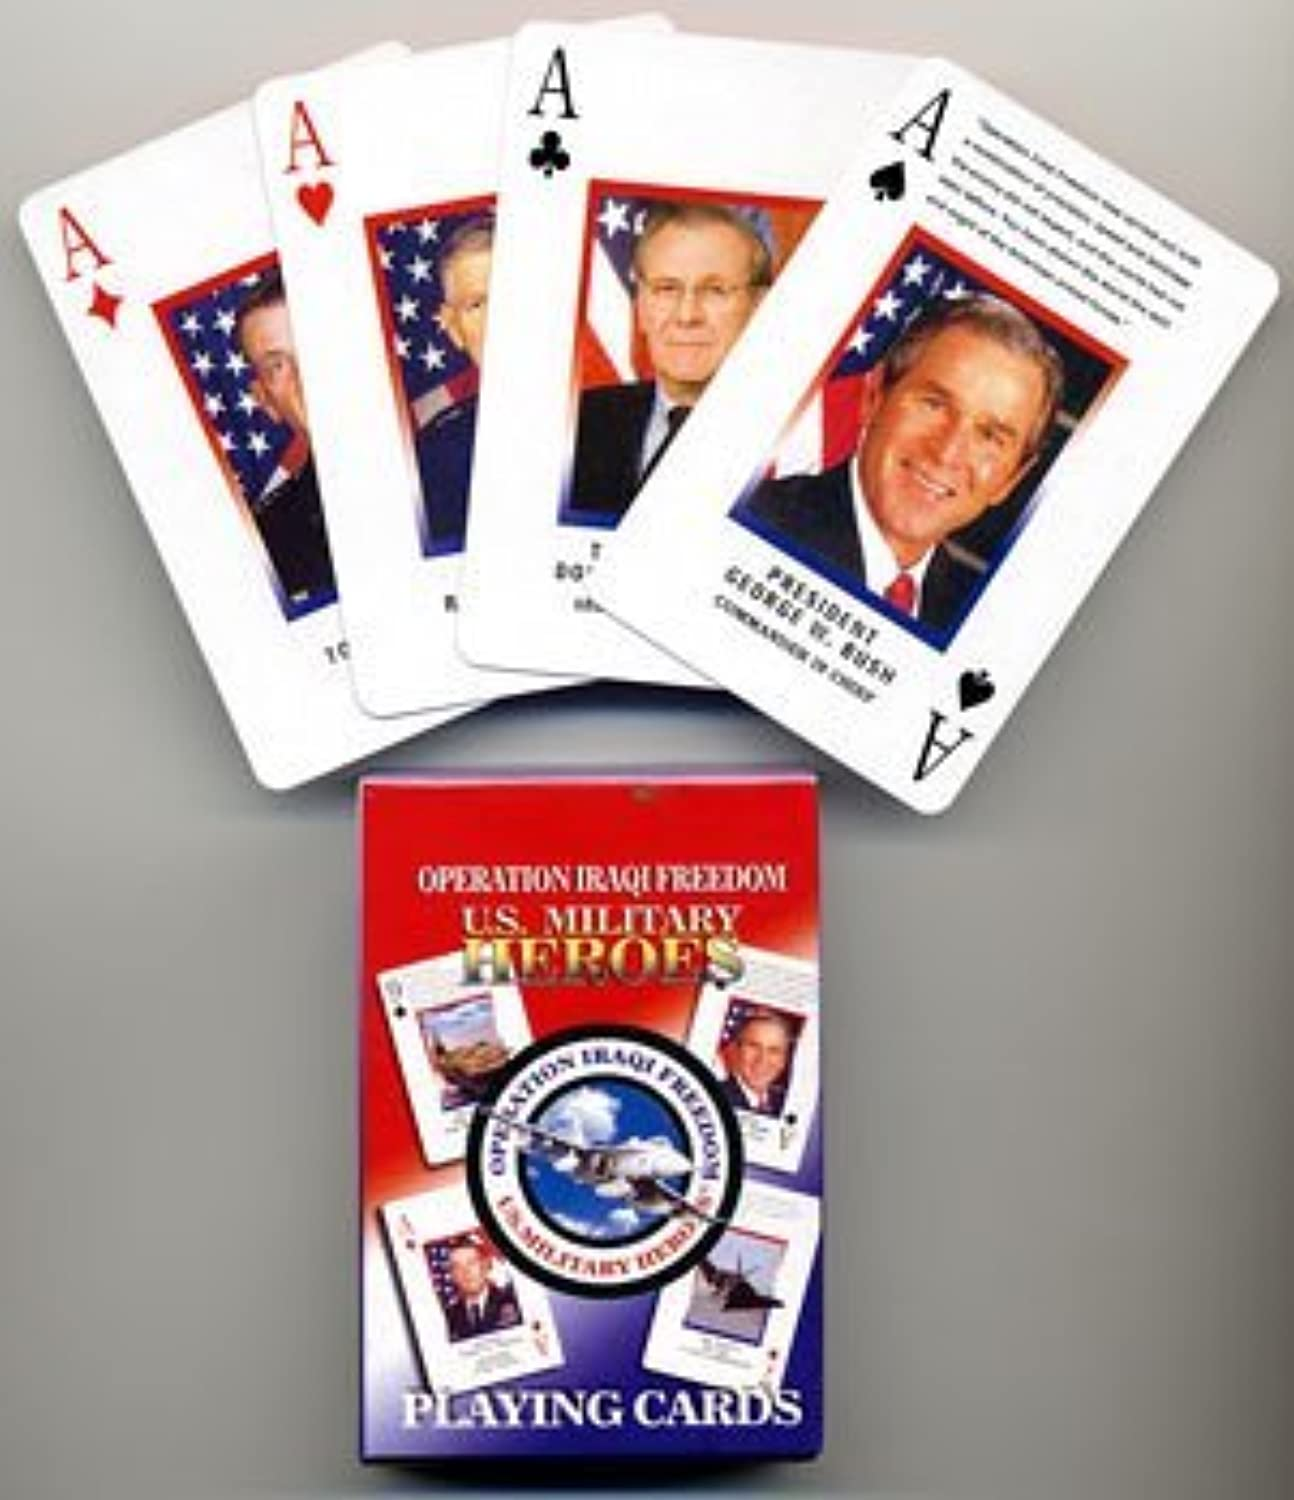 Operation Iraqi Freedom U.S. Military Heroes Playing Cards by Select